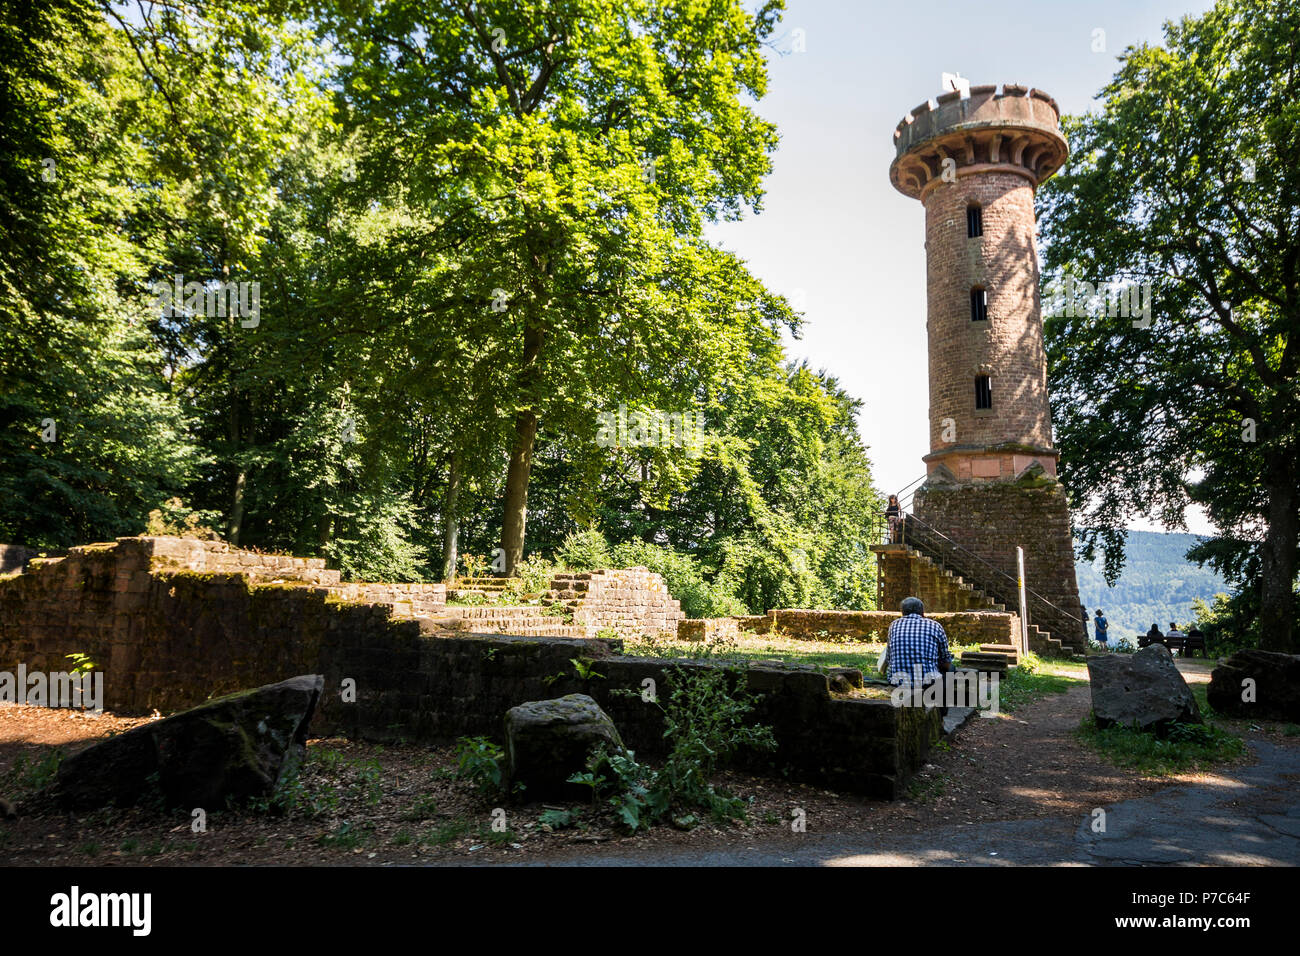 Heidelberg, Germany. The Heiligenberg Aussichtsturm, an old observation tower in the mountain surrounding the city of Heidelberg - Stock Image